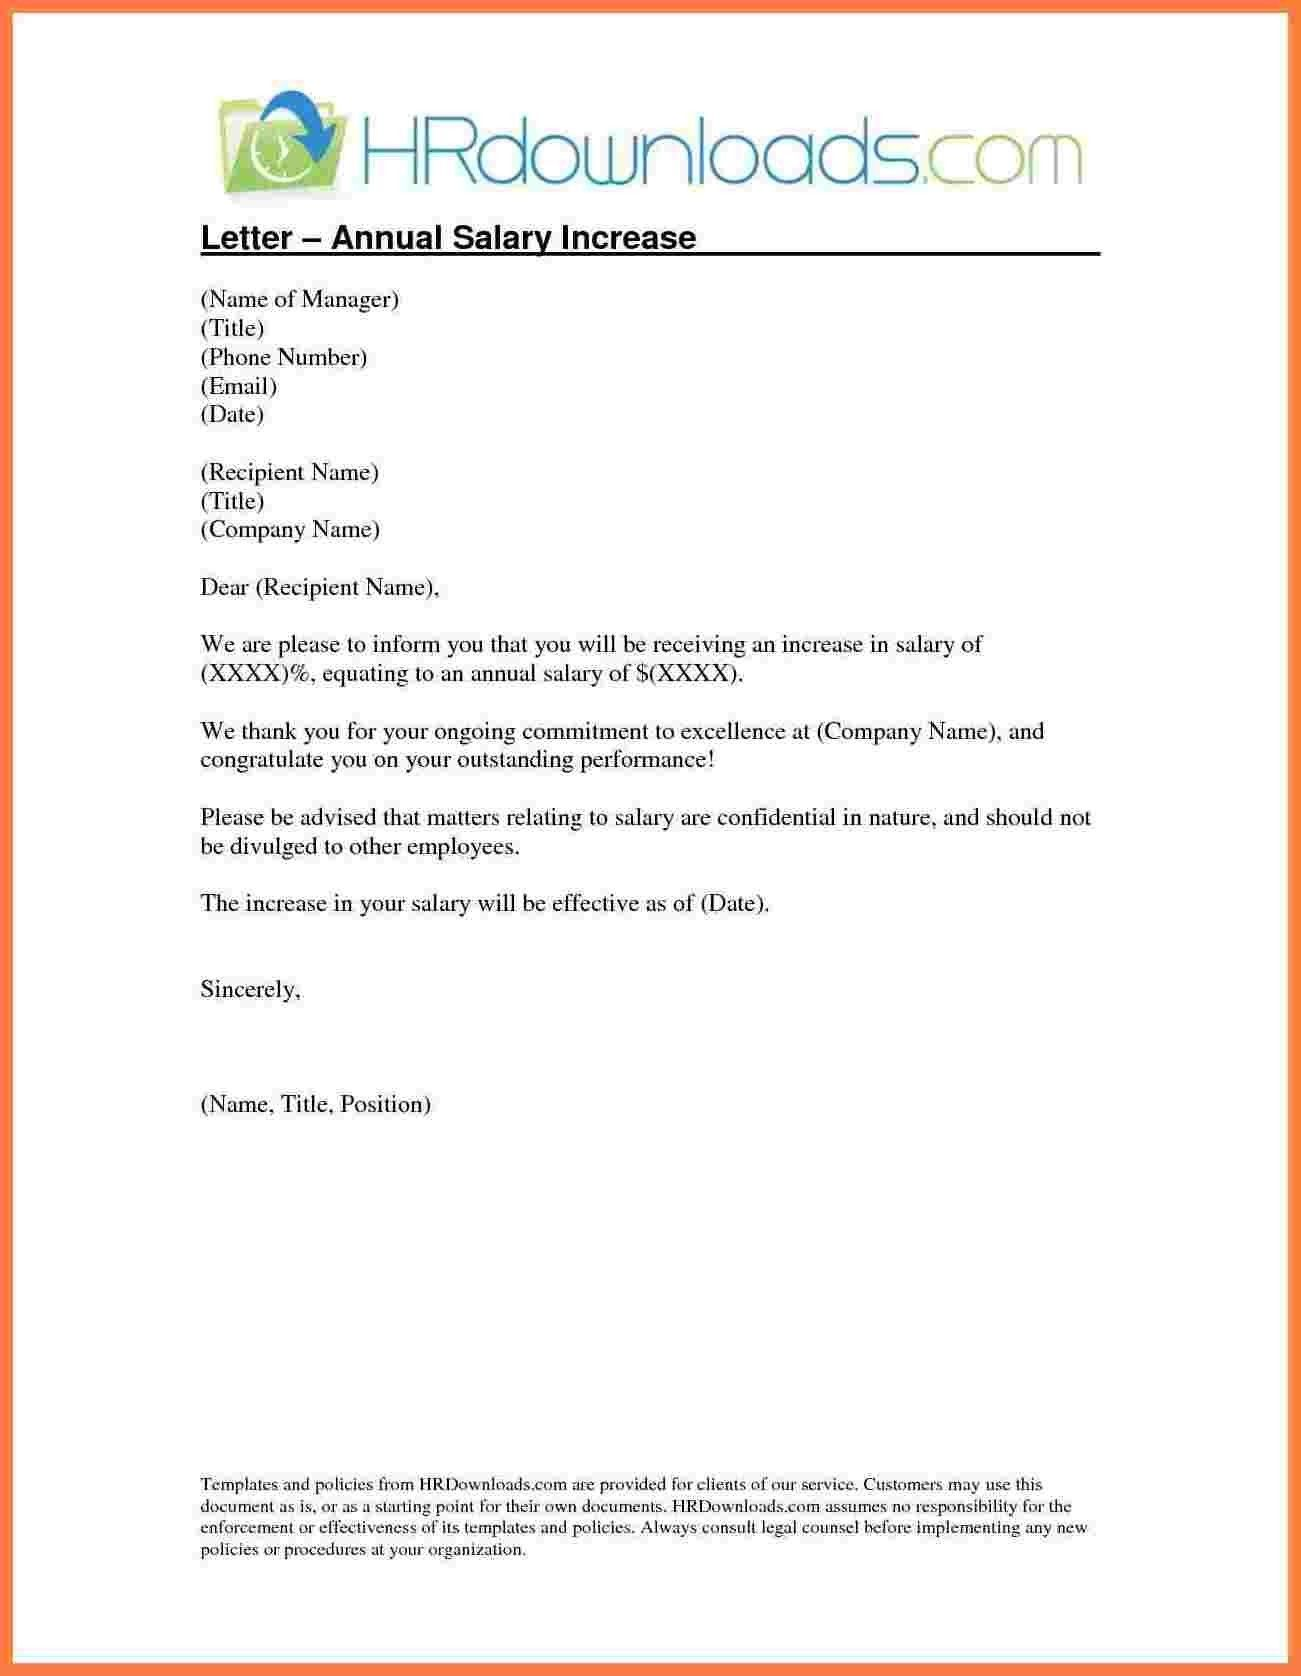 Increment Letter Template Salary Increment Letter Formatemployer Copy 5 Template Letter .